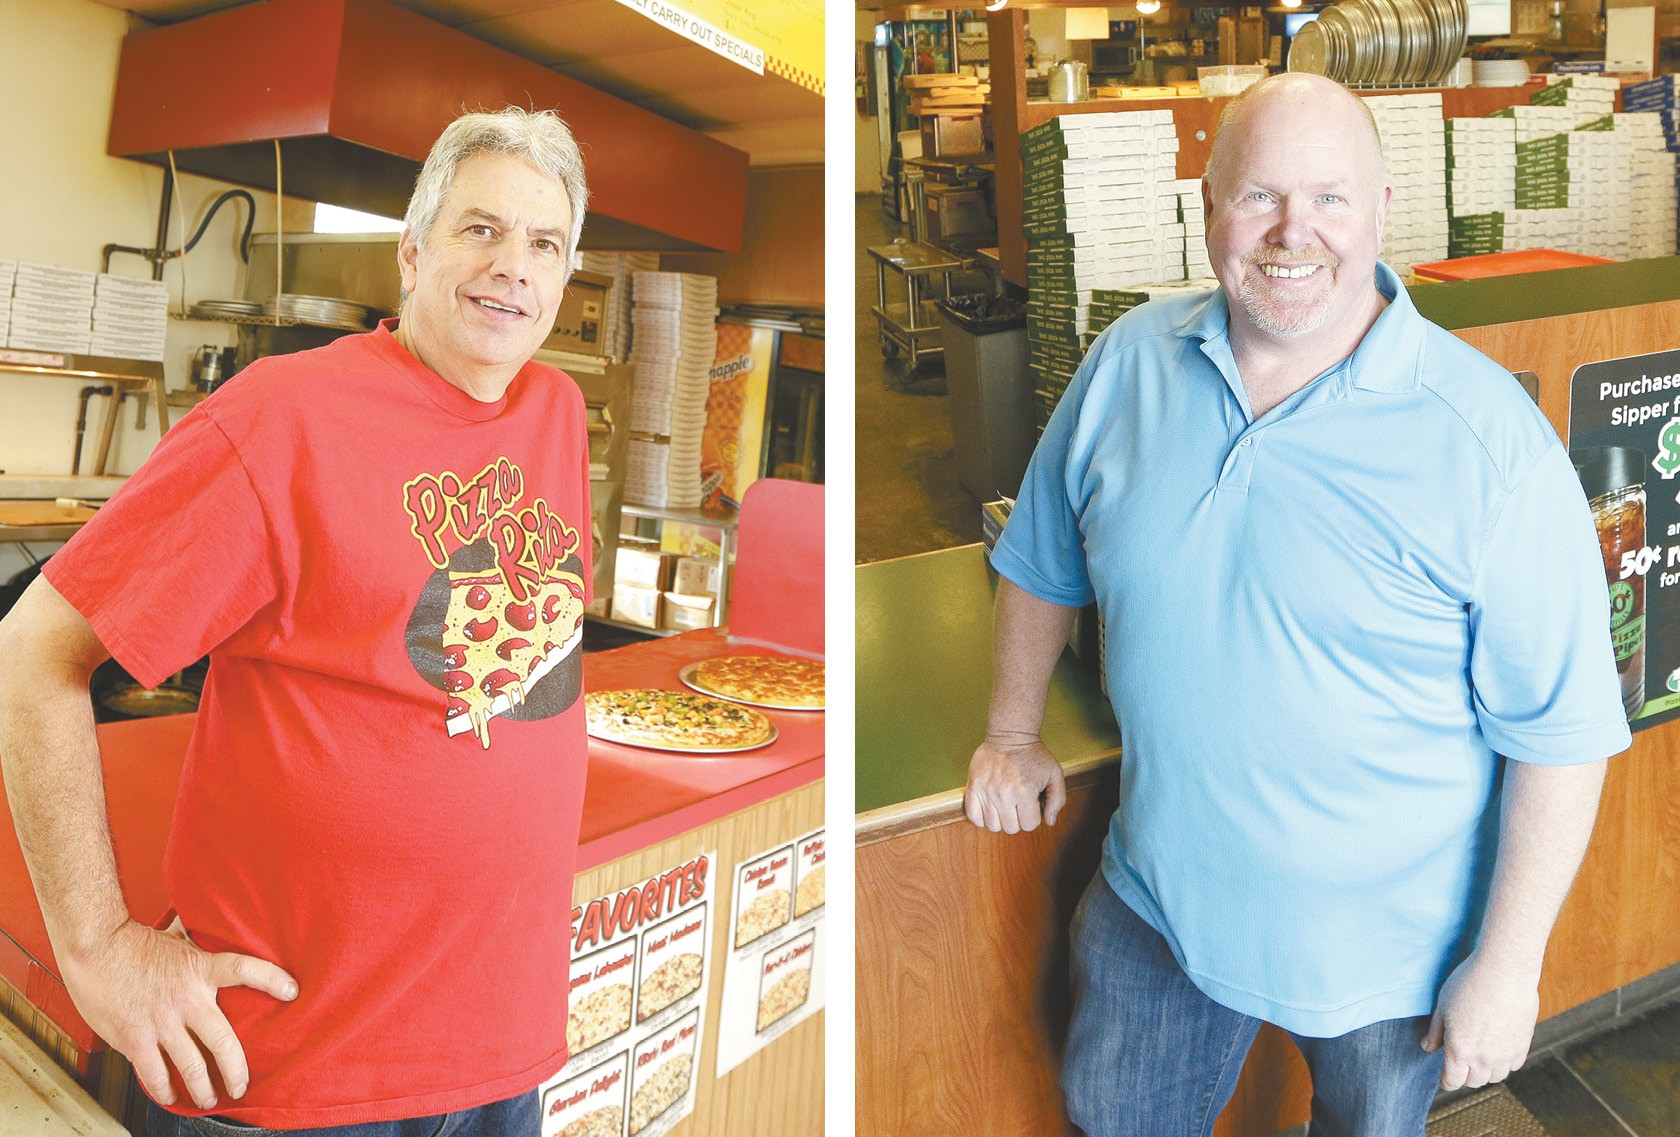 Pizza Rita founder Brian Dickmann (left) and Pizza Pipeline co-owner Mike Kight. - YOUNG KWAK PHOTOS